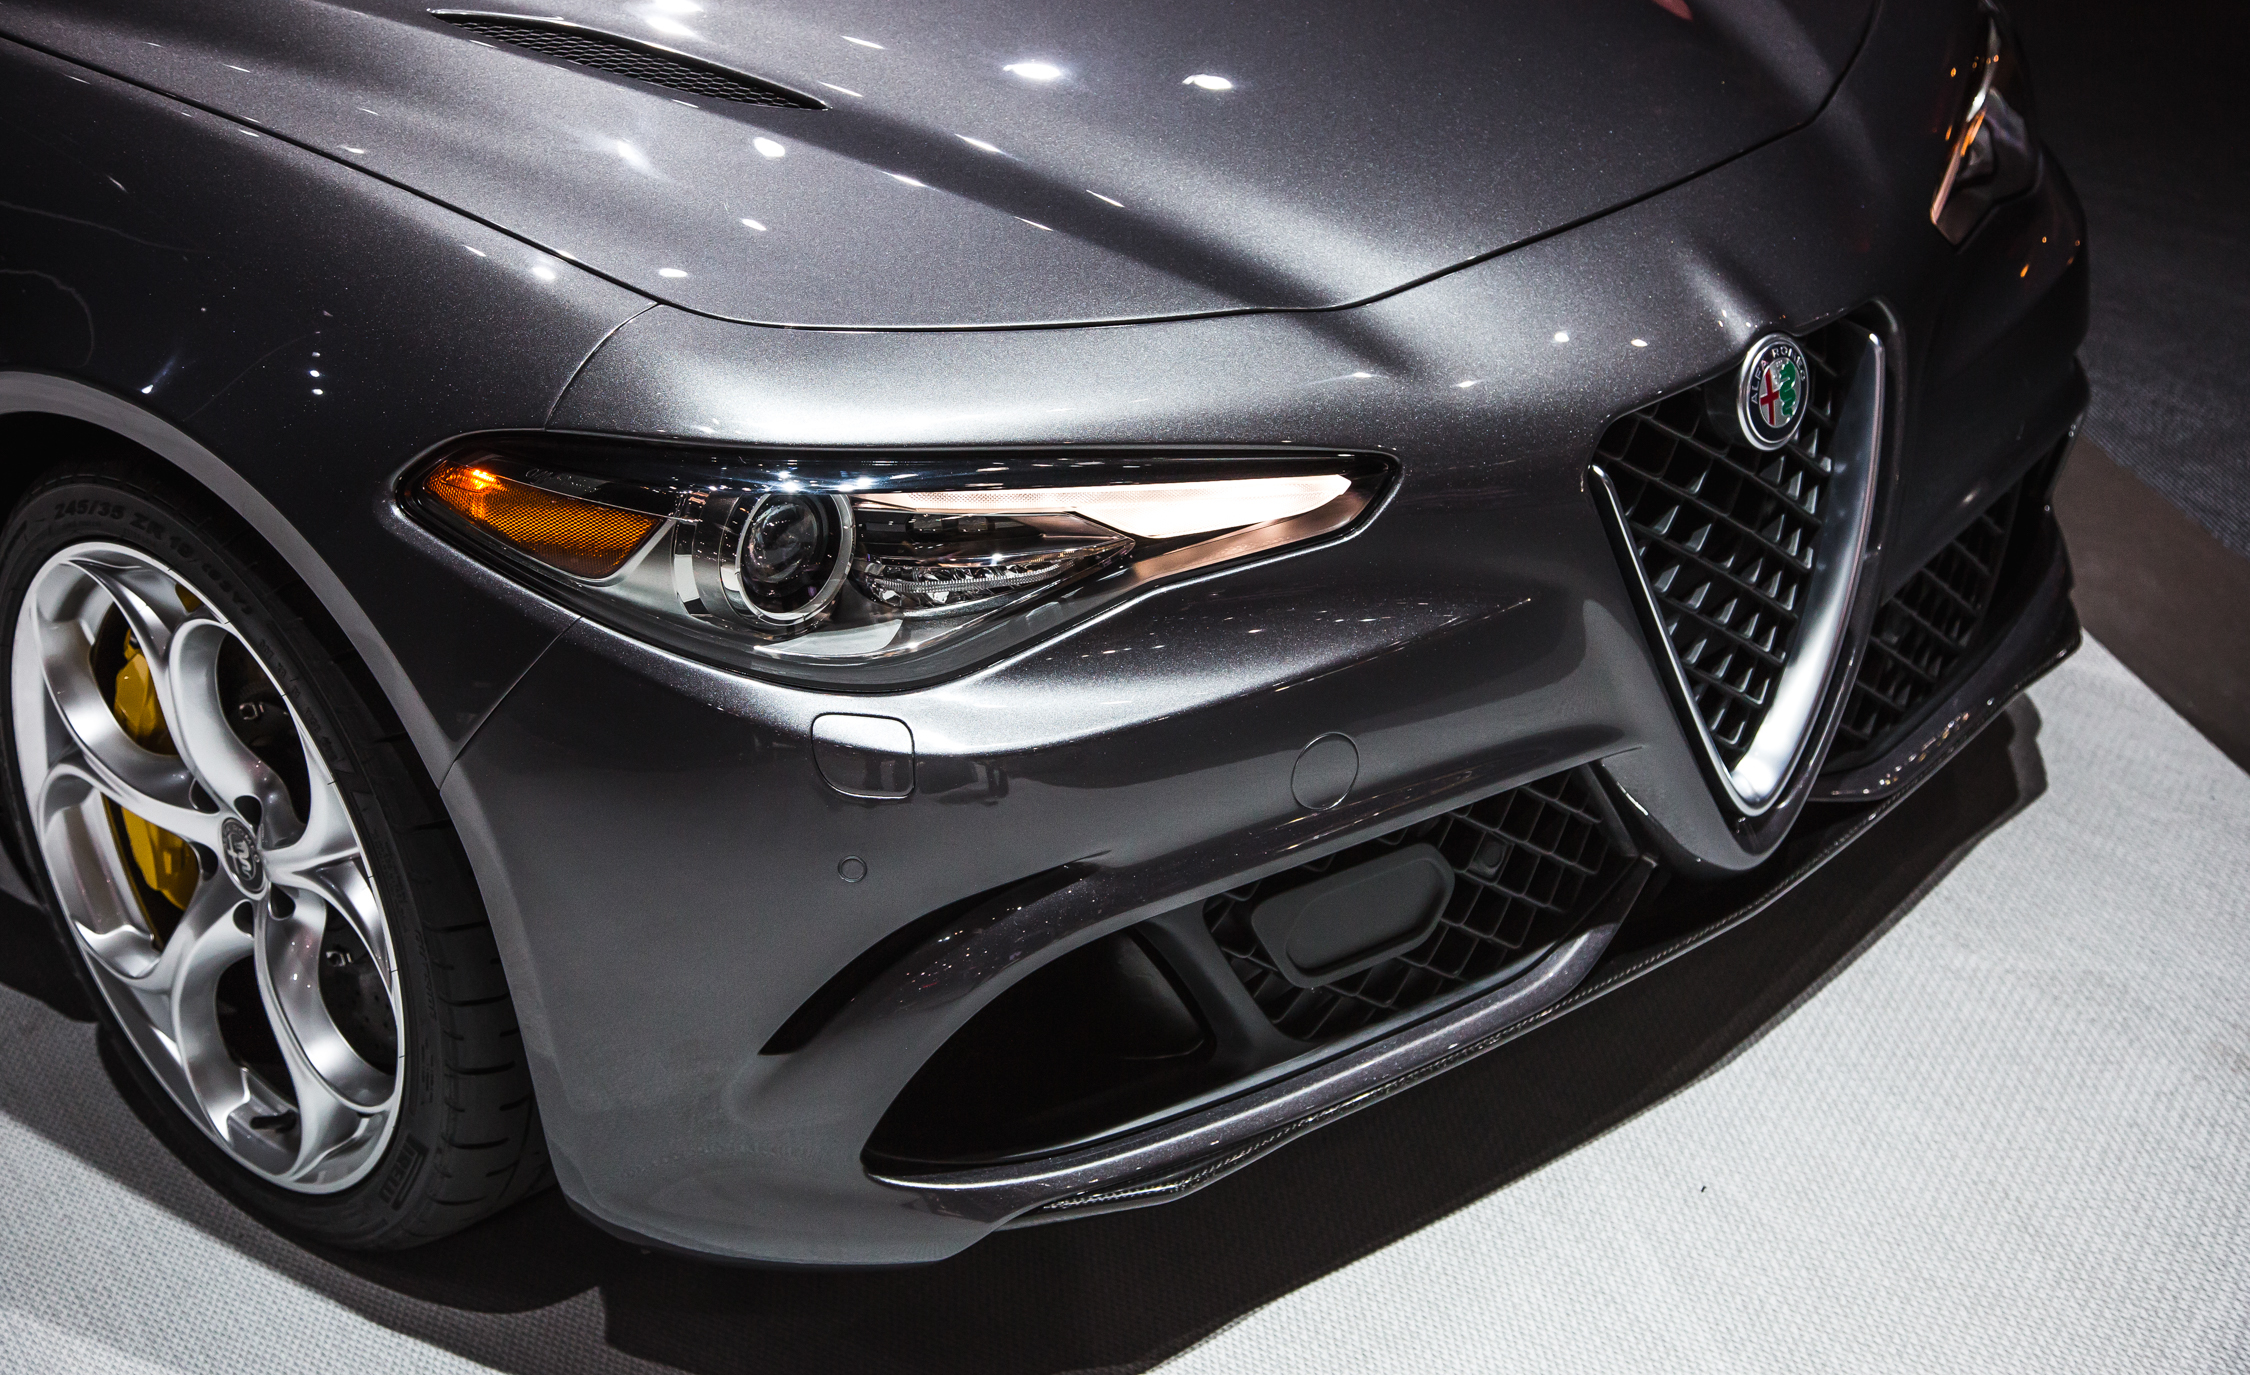 2017 Alfa Romeo Giulia Quadrifoglio Headlamp (Photo 23 of 29)